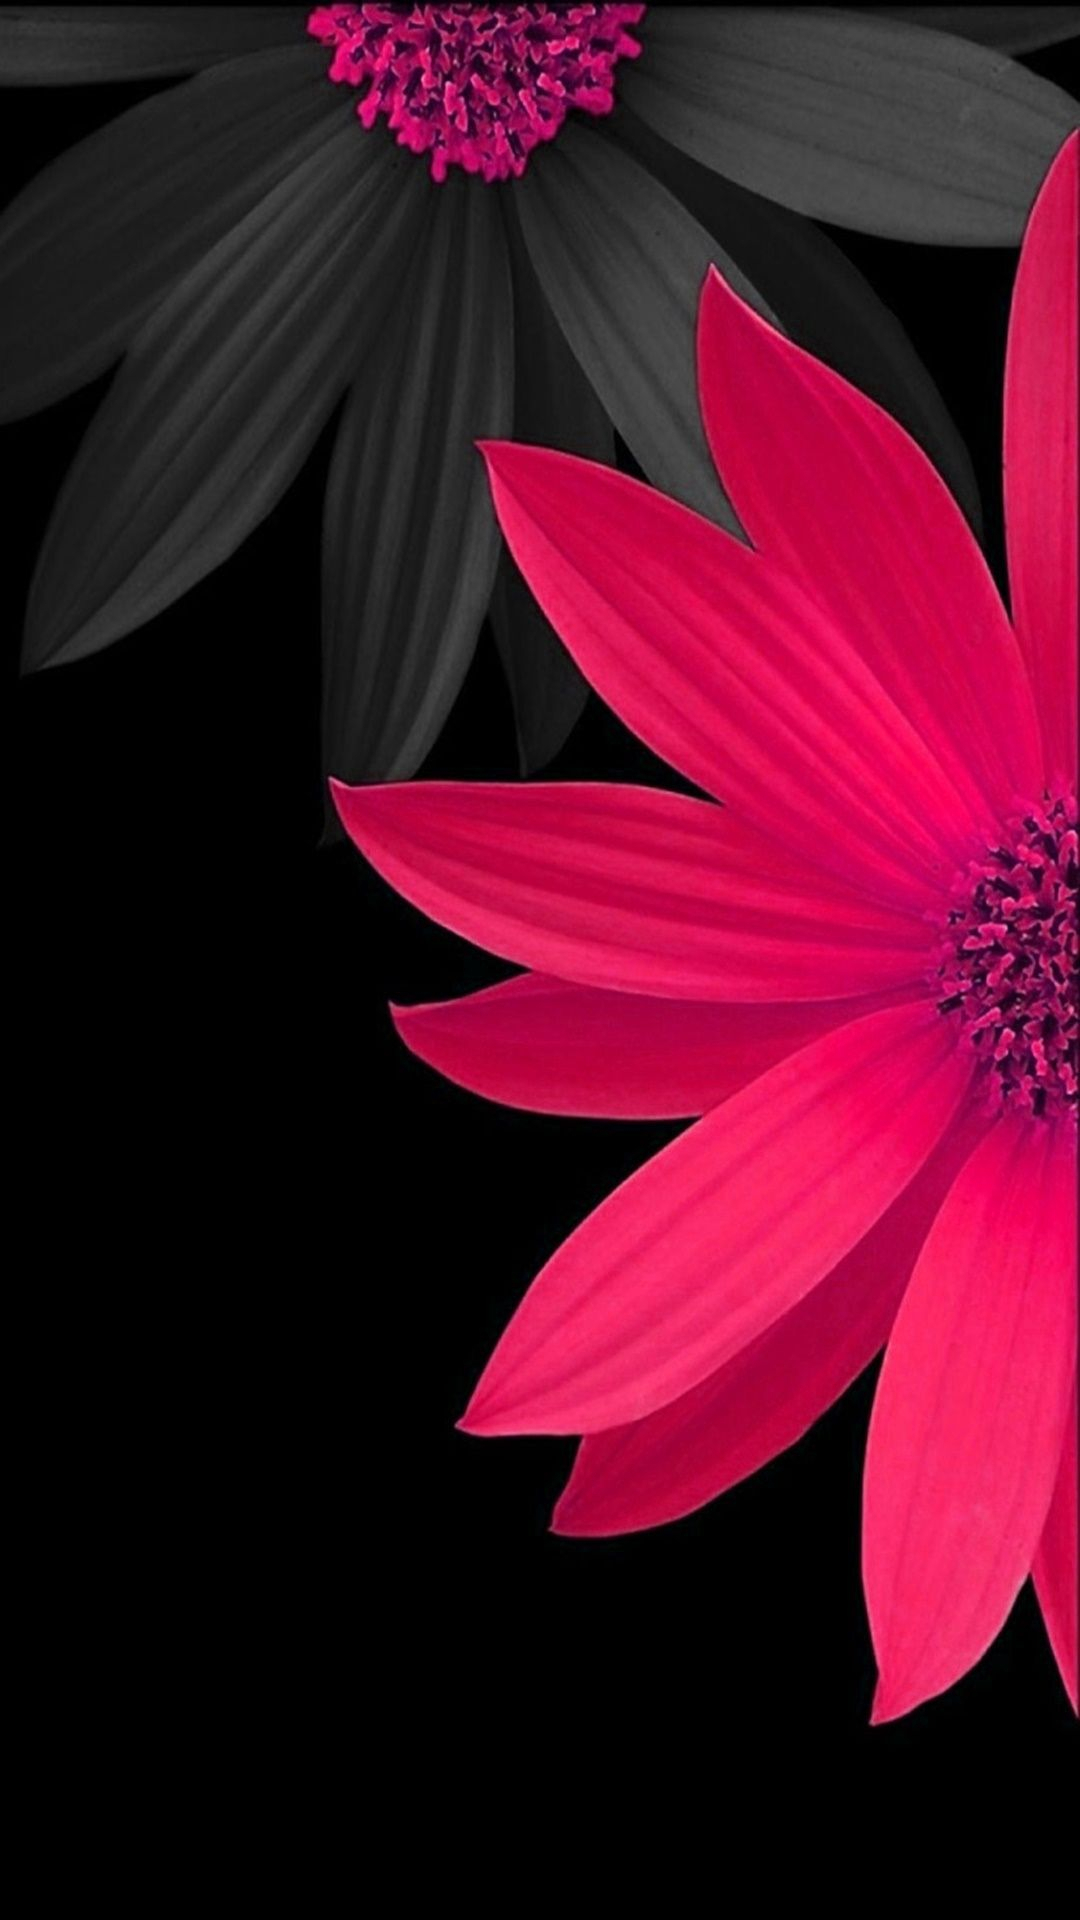 pink #black #flower #wallpaper #background | wallpapers